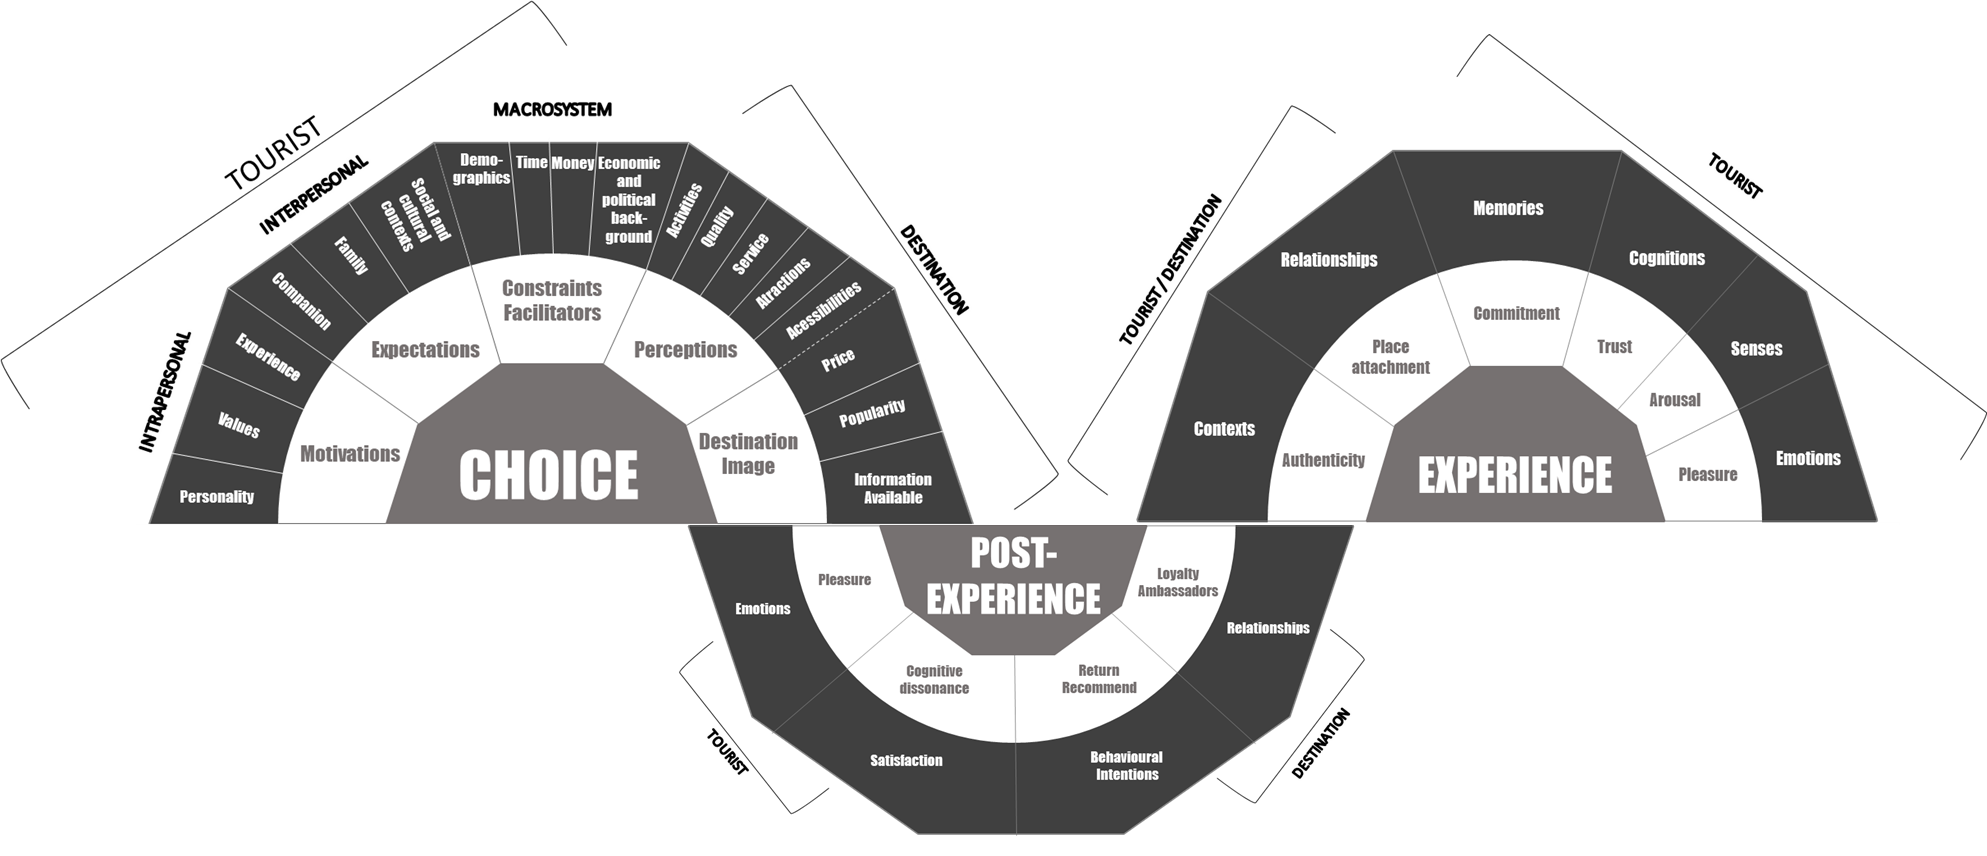 The first part of the model is choice, comprising motivations (personality, values, experience), expectations (companion, family, social and cultural contexts), constraints facilitators (demographics, time, money, economic and political background), destination perceptions (activities, quality, service, attractions, accessibilities), and destination image (price, popularity, information available). The second part of the model is post-experience, comprising pleasure (emotions), cognitive dissonance (satisfaction), return recommend (behavioural intentions), and loyalty ambassadors (relationships). The third part of the model is experience, comprising authenticity (contexts), place attachment (relationships), commitment (memories), trust (cognitions), arousal (senses), and pleasure (emotions).